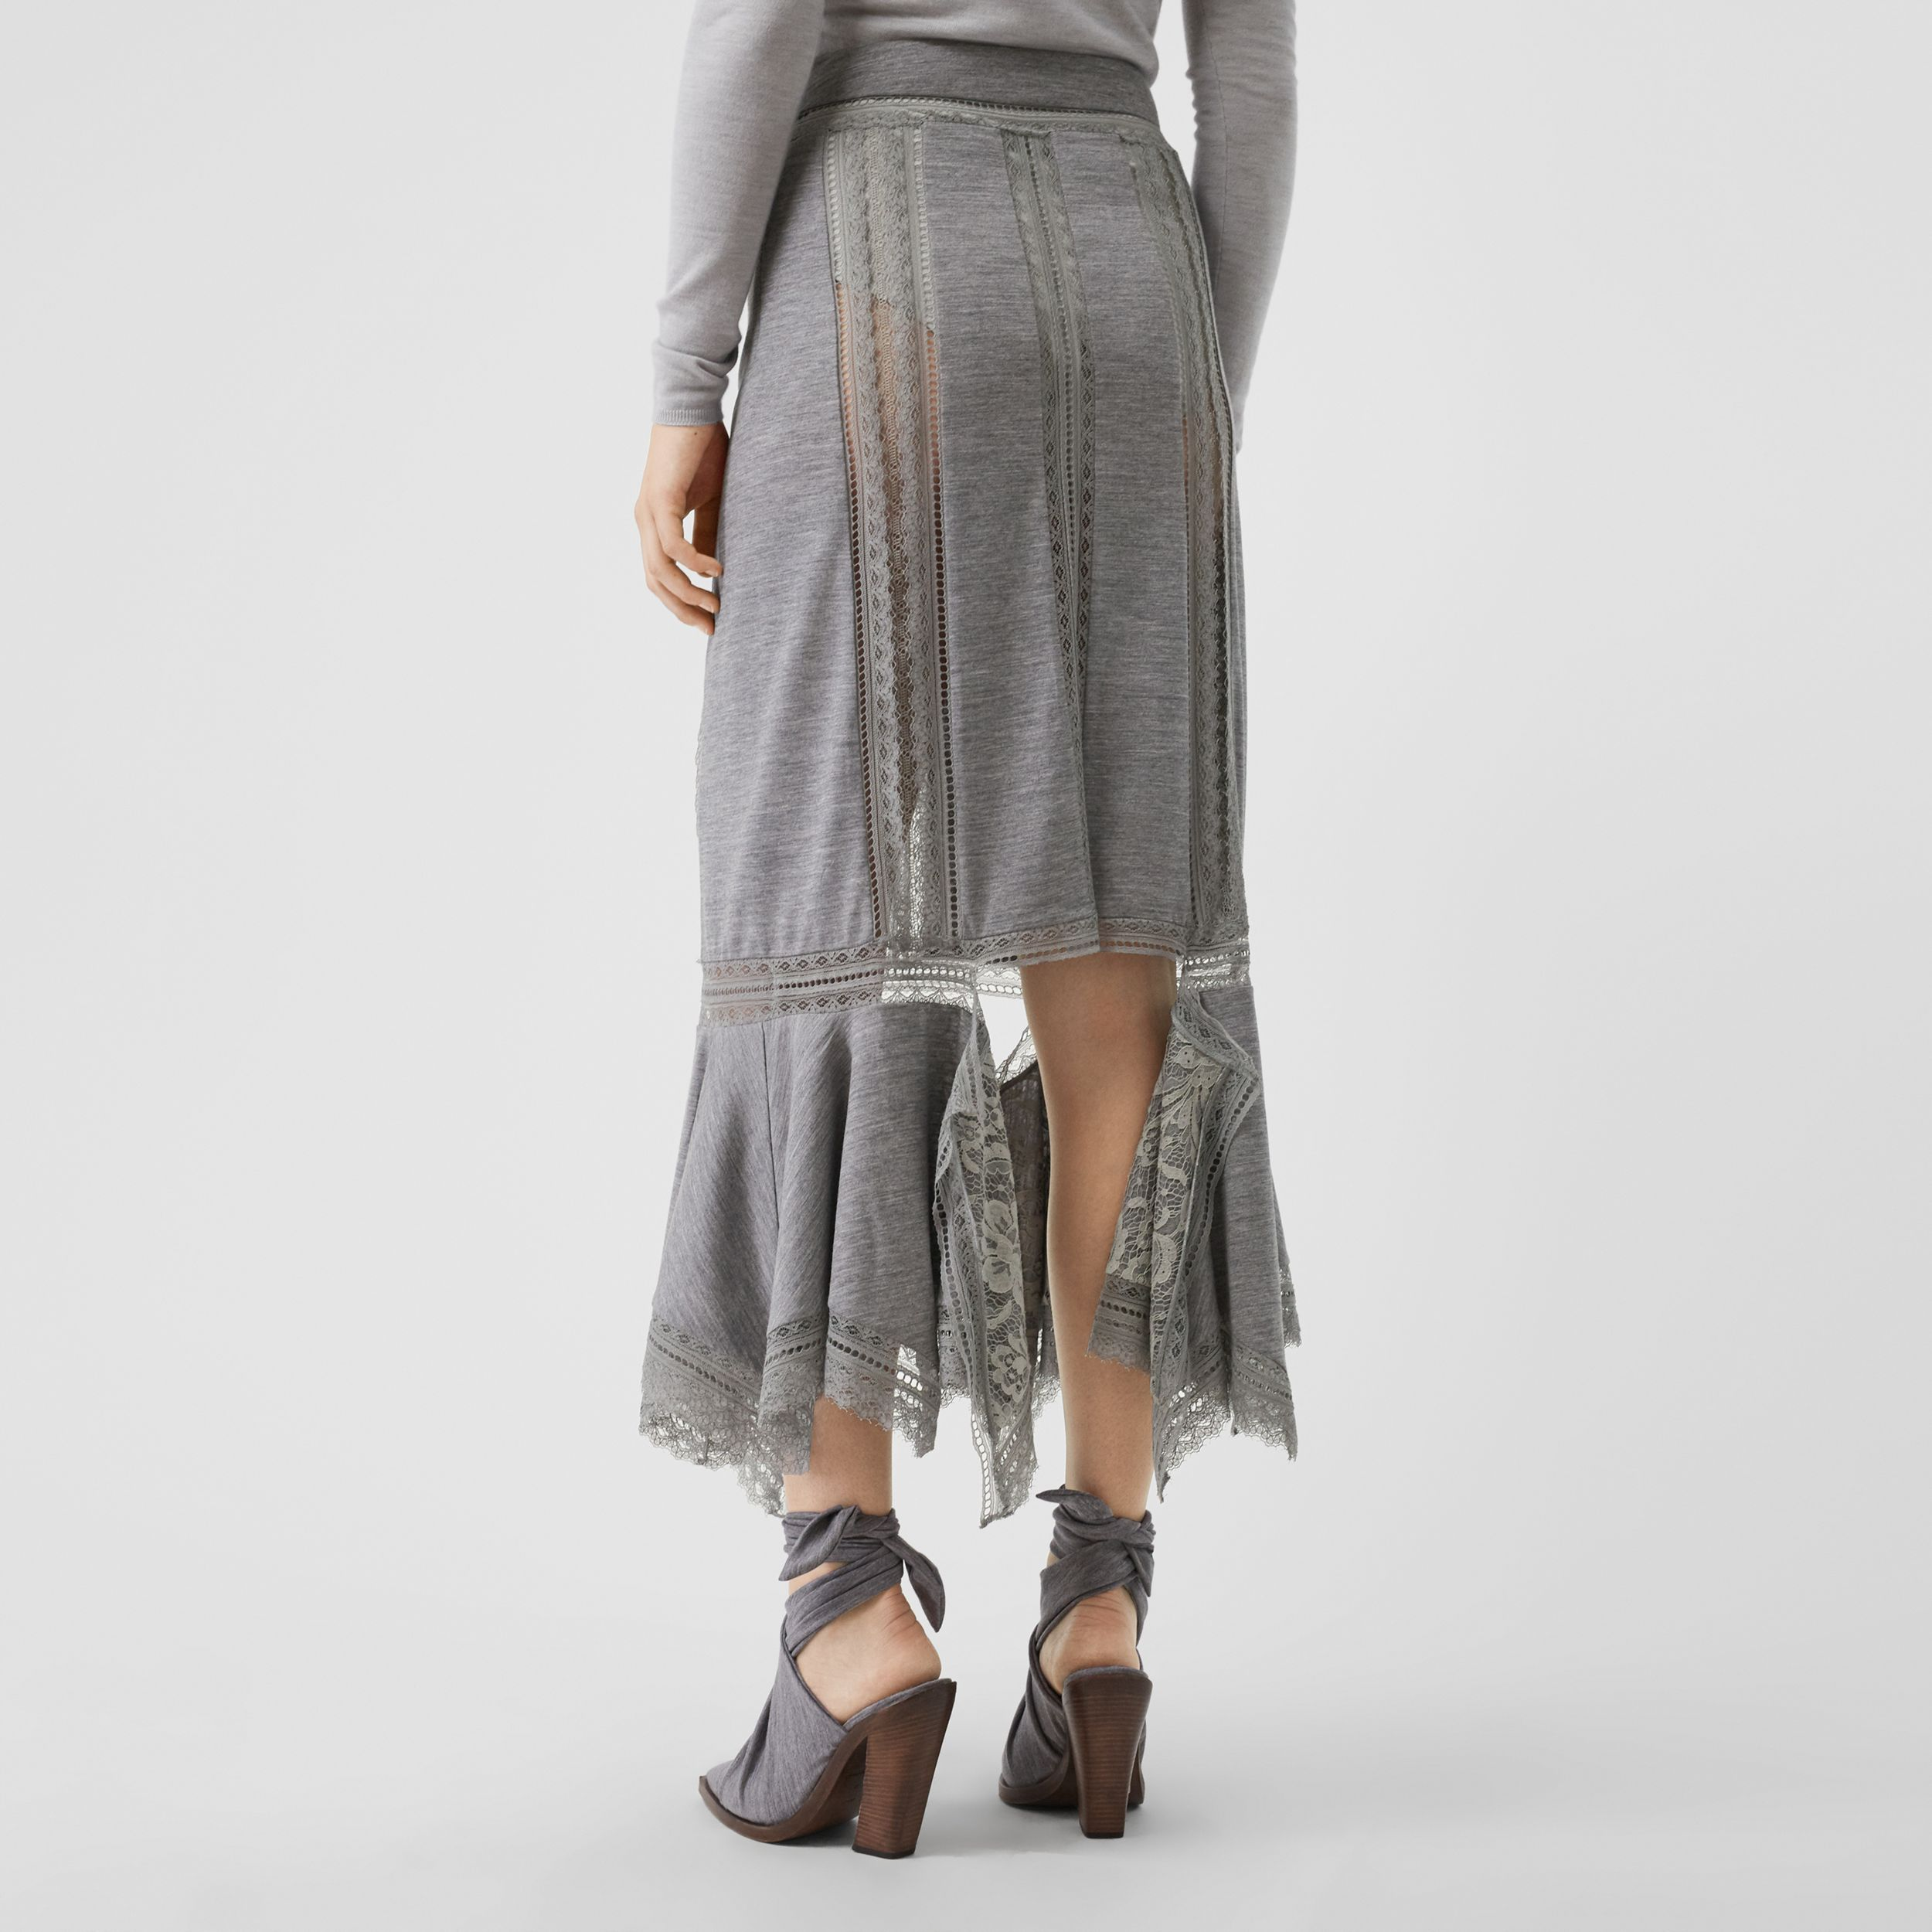 Chantilly Lace and Wool Jersey Skirt in Cloud Grey - Women | Burberry - 3